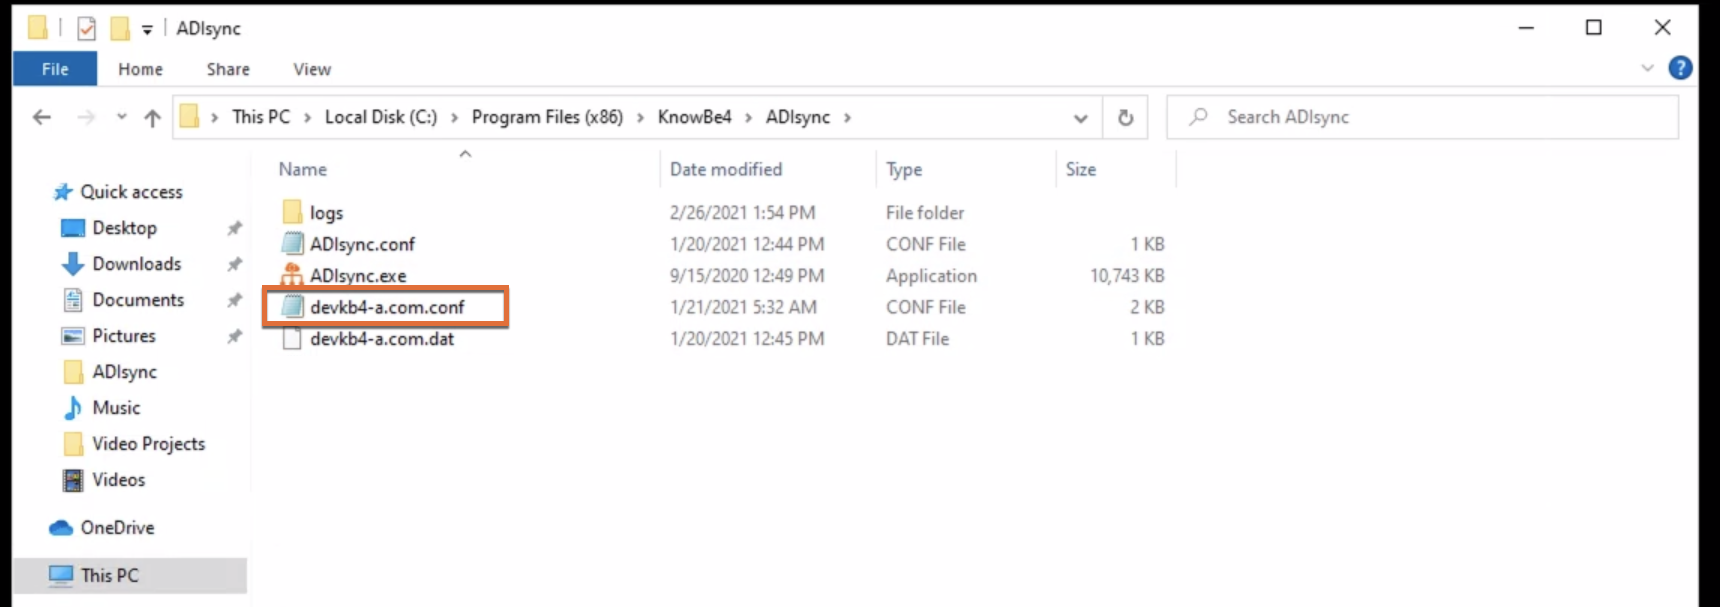 The ADI sync tool installation directory with the domain.conf file highlighted